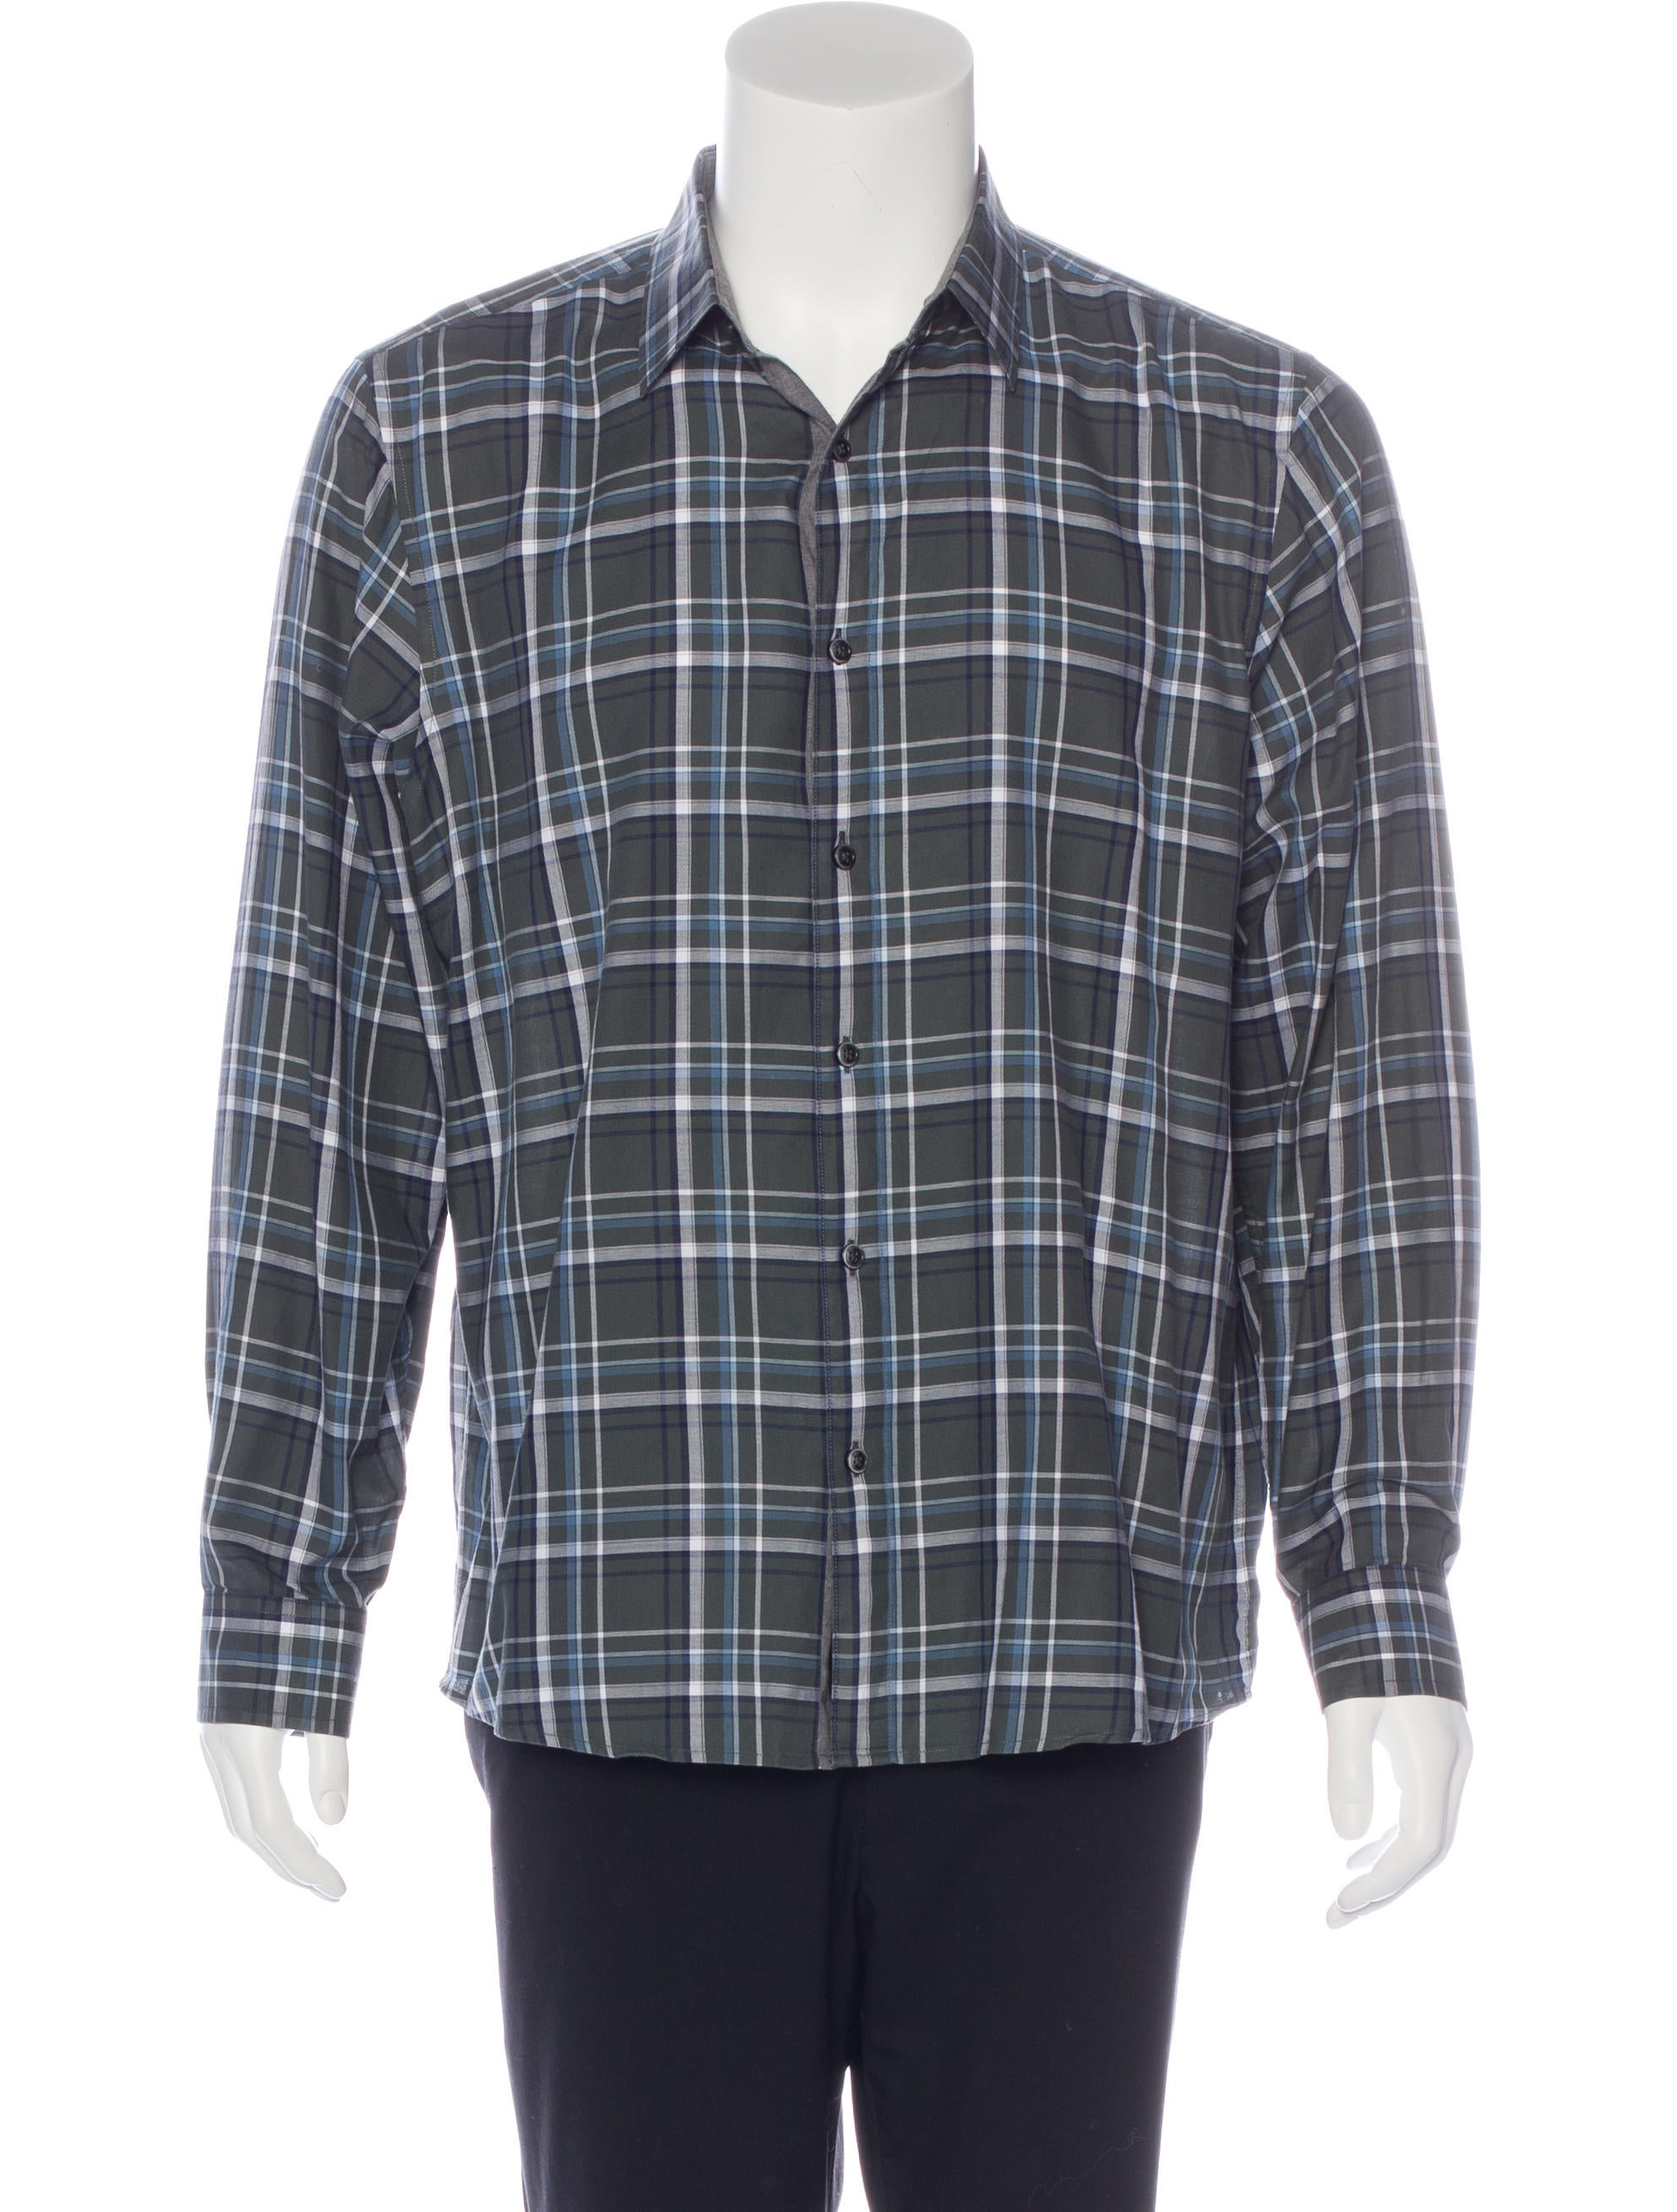 A cool-weather staple, this long-sleeved button-down shirt features a classic plaid print and a collar--perfect with jeans and ankle boots. From Denim & Co.(R) Fashions/5(46).